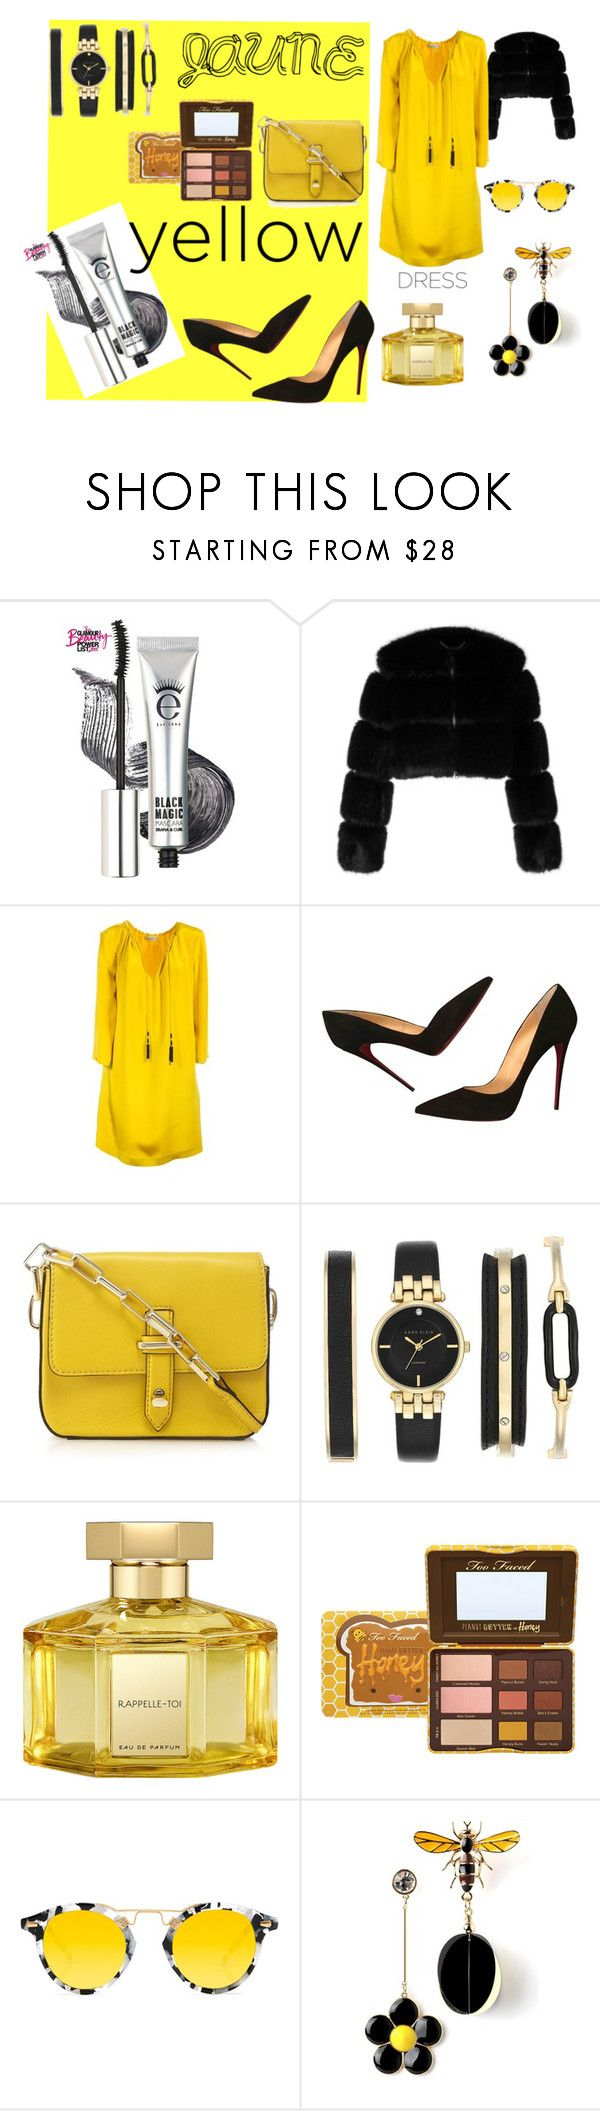 """#yellowdress"" by hajer-bh ❤ liked on Polyvore featuring Givenchy, Etro, Christian Louboutin, Anne Klein, L'Artisan Parfumeur and Krewe"